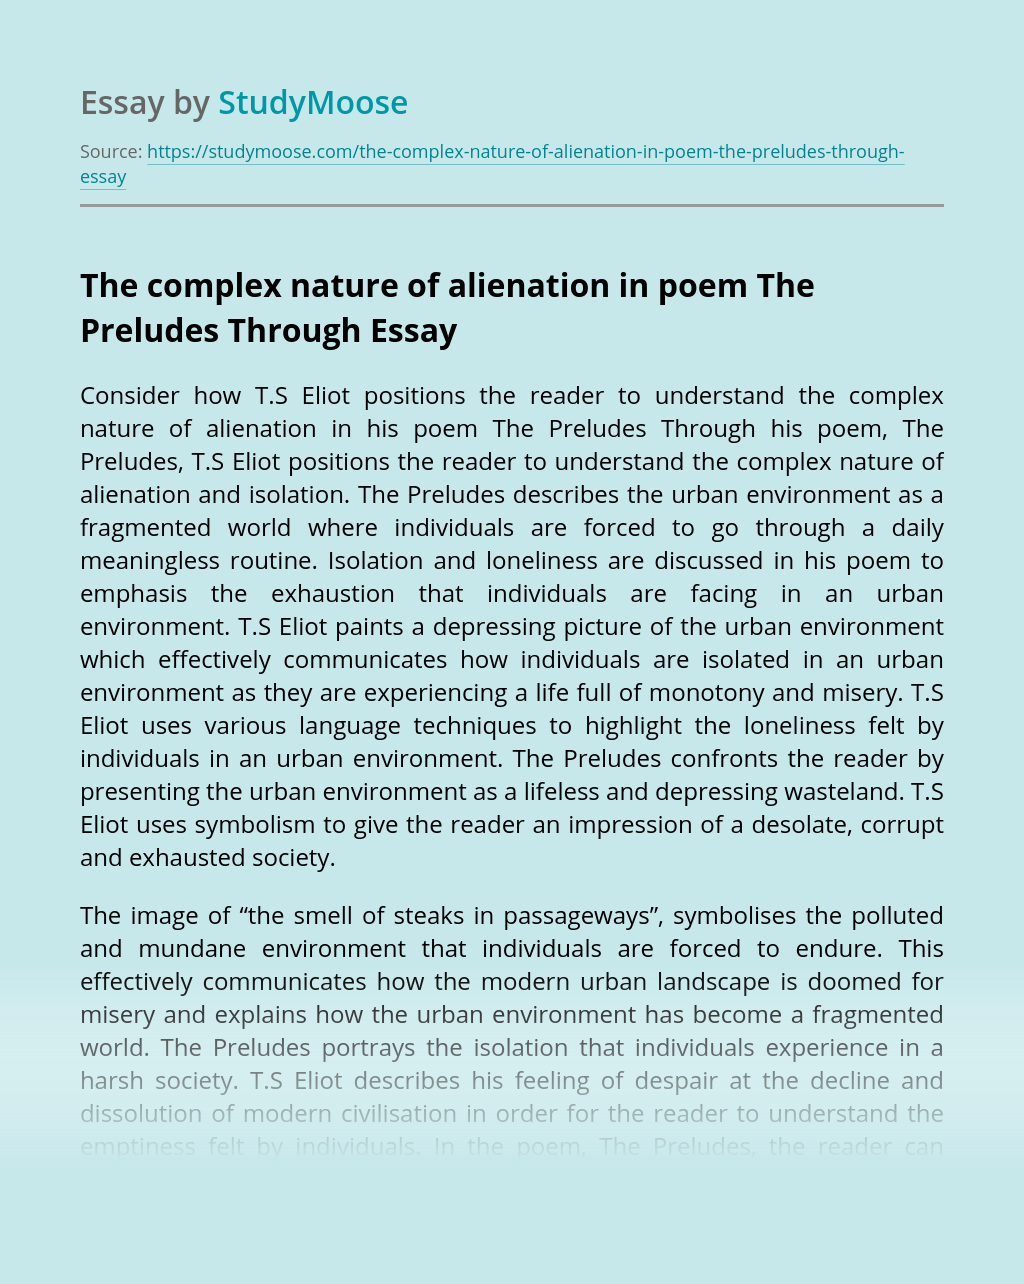 The complex nature of alienation in poem The Preludes Through